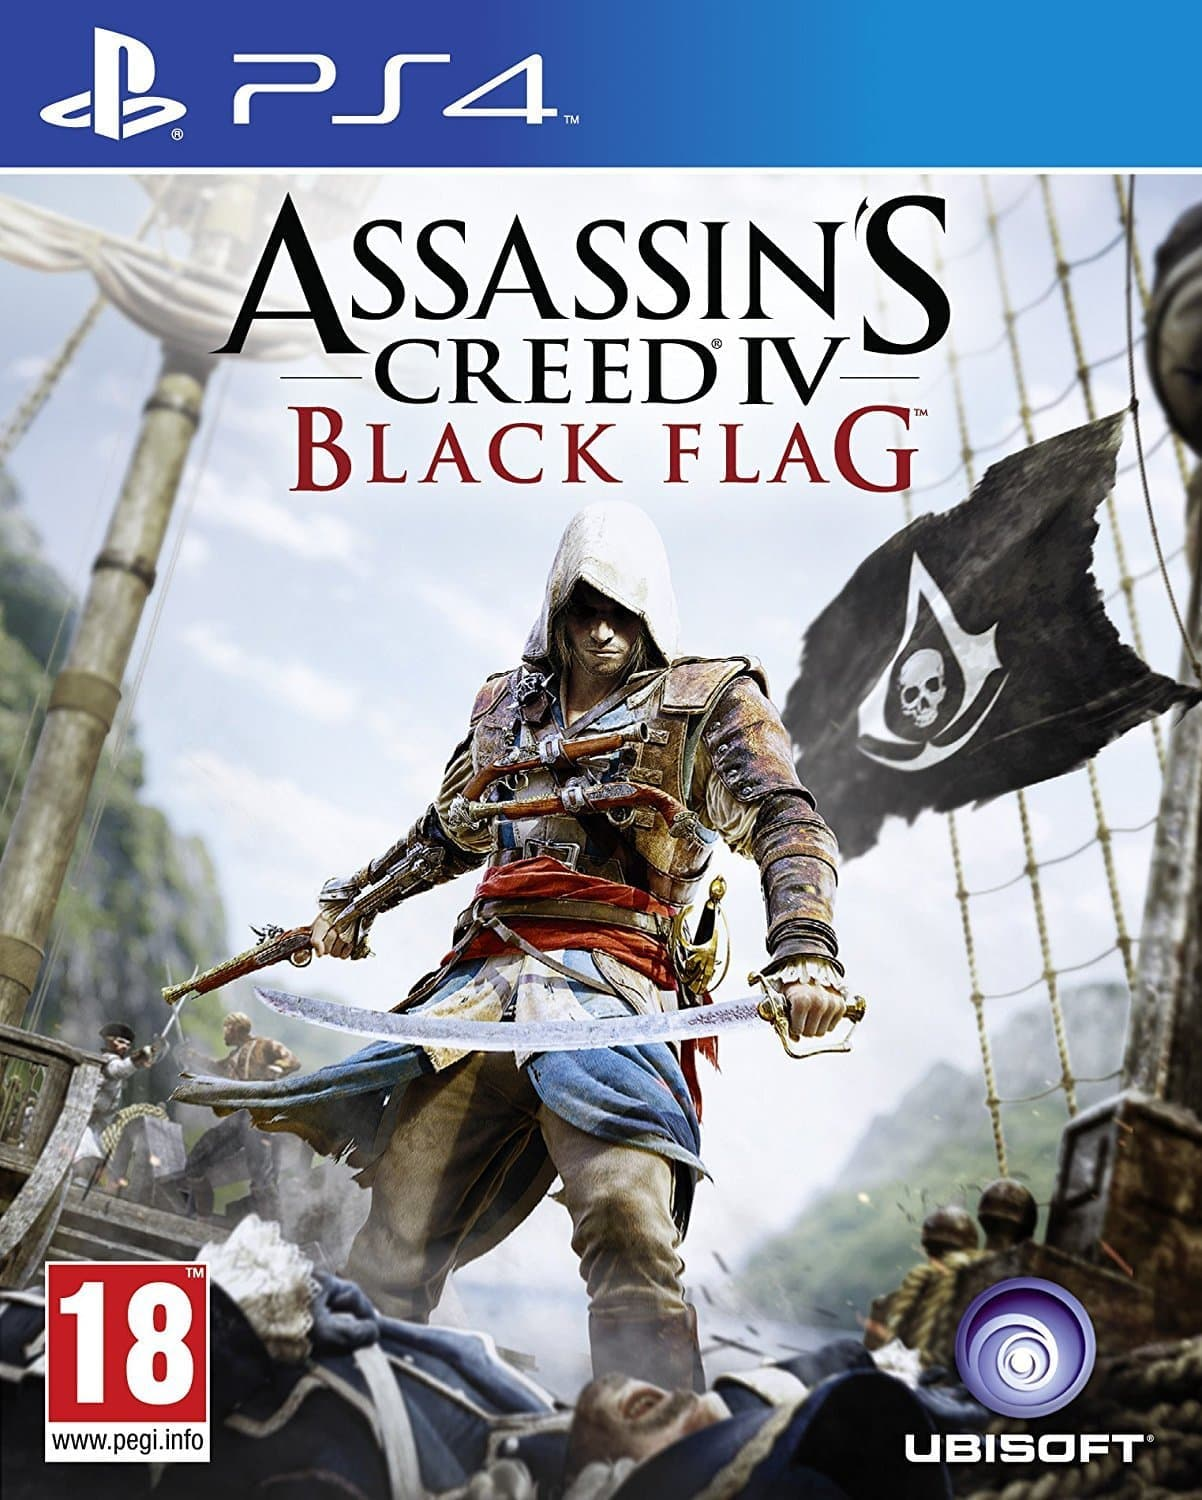 Assassin's Creed IV: Чёрный флаг (PS4, русская версия)